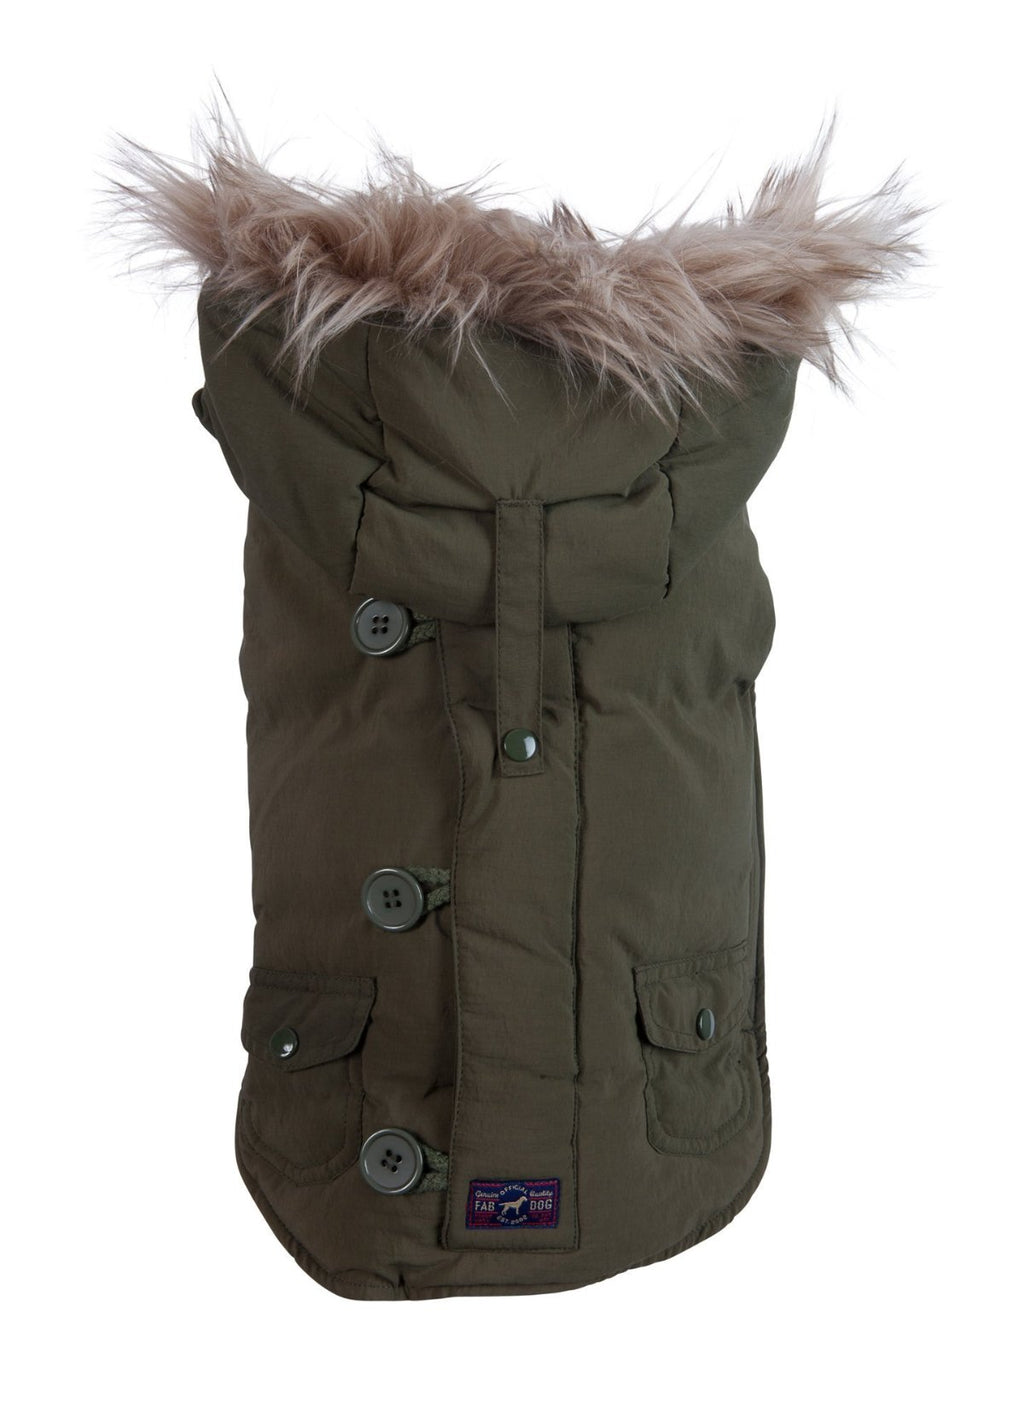 Doggie Trends Nyc Coat Olive Faux Fur Trim Dog Parka Winter Coat